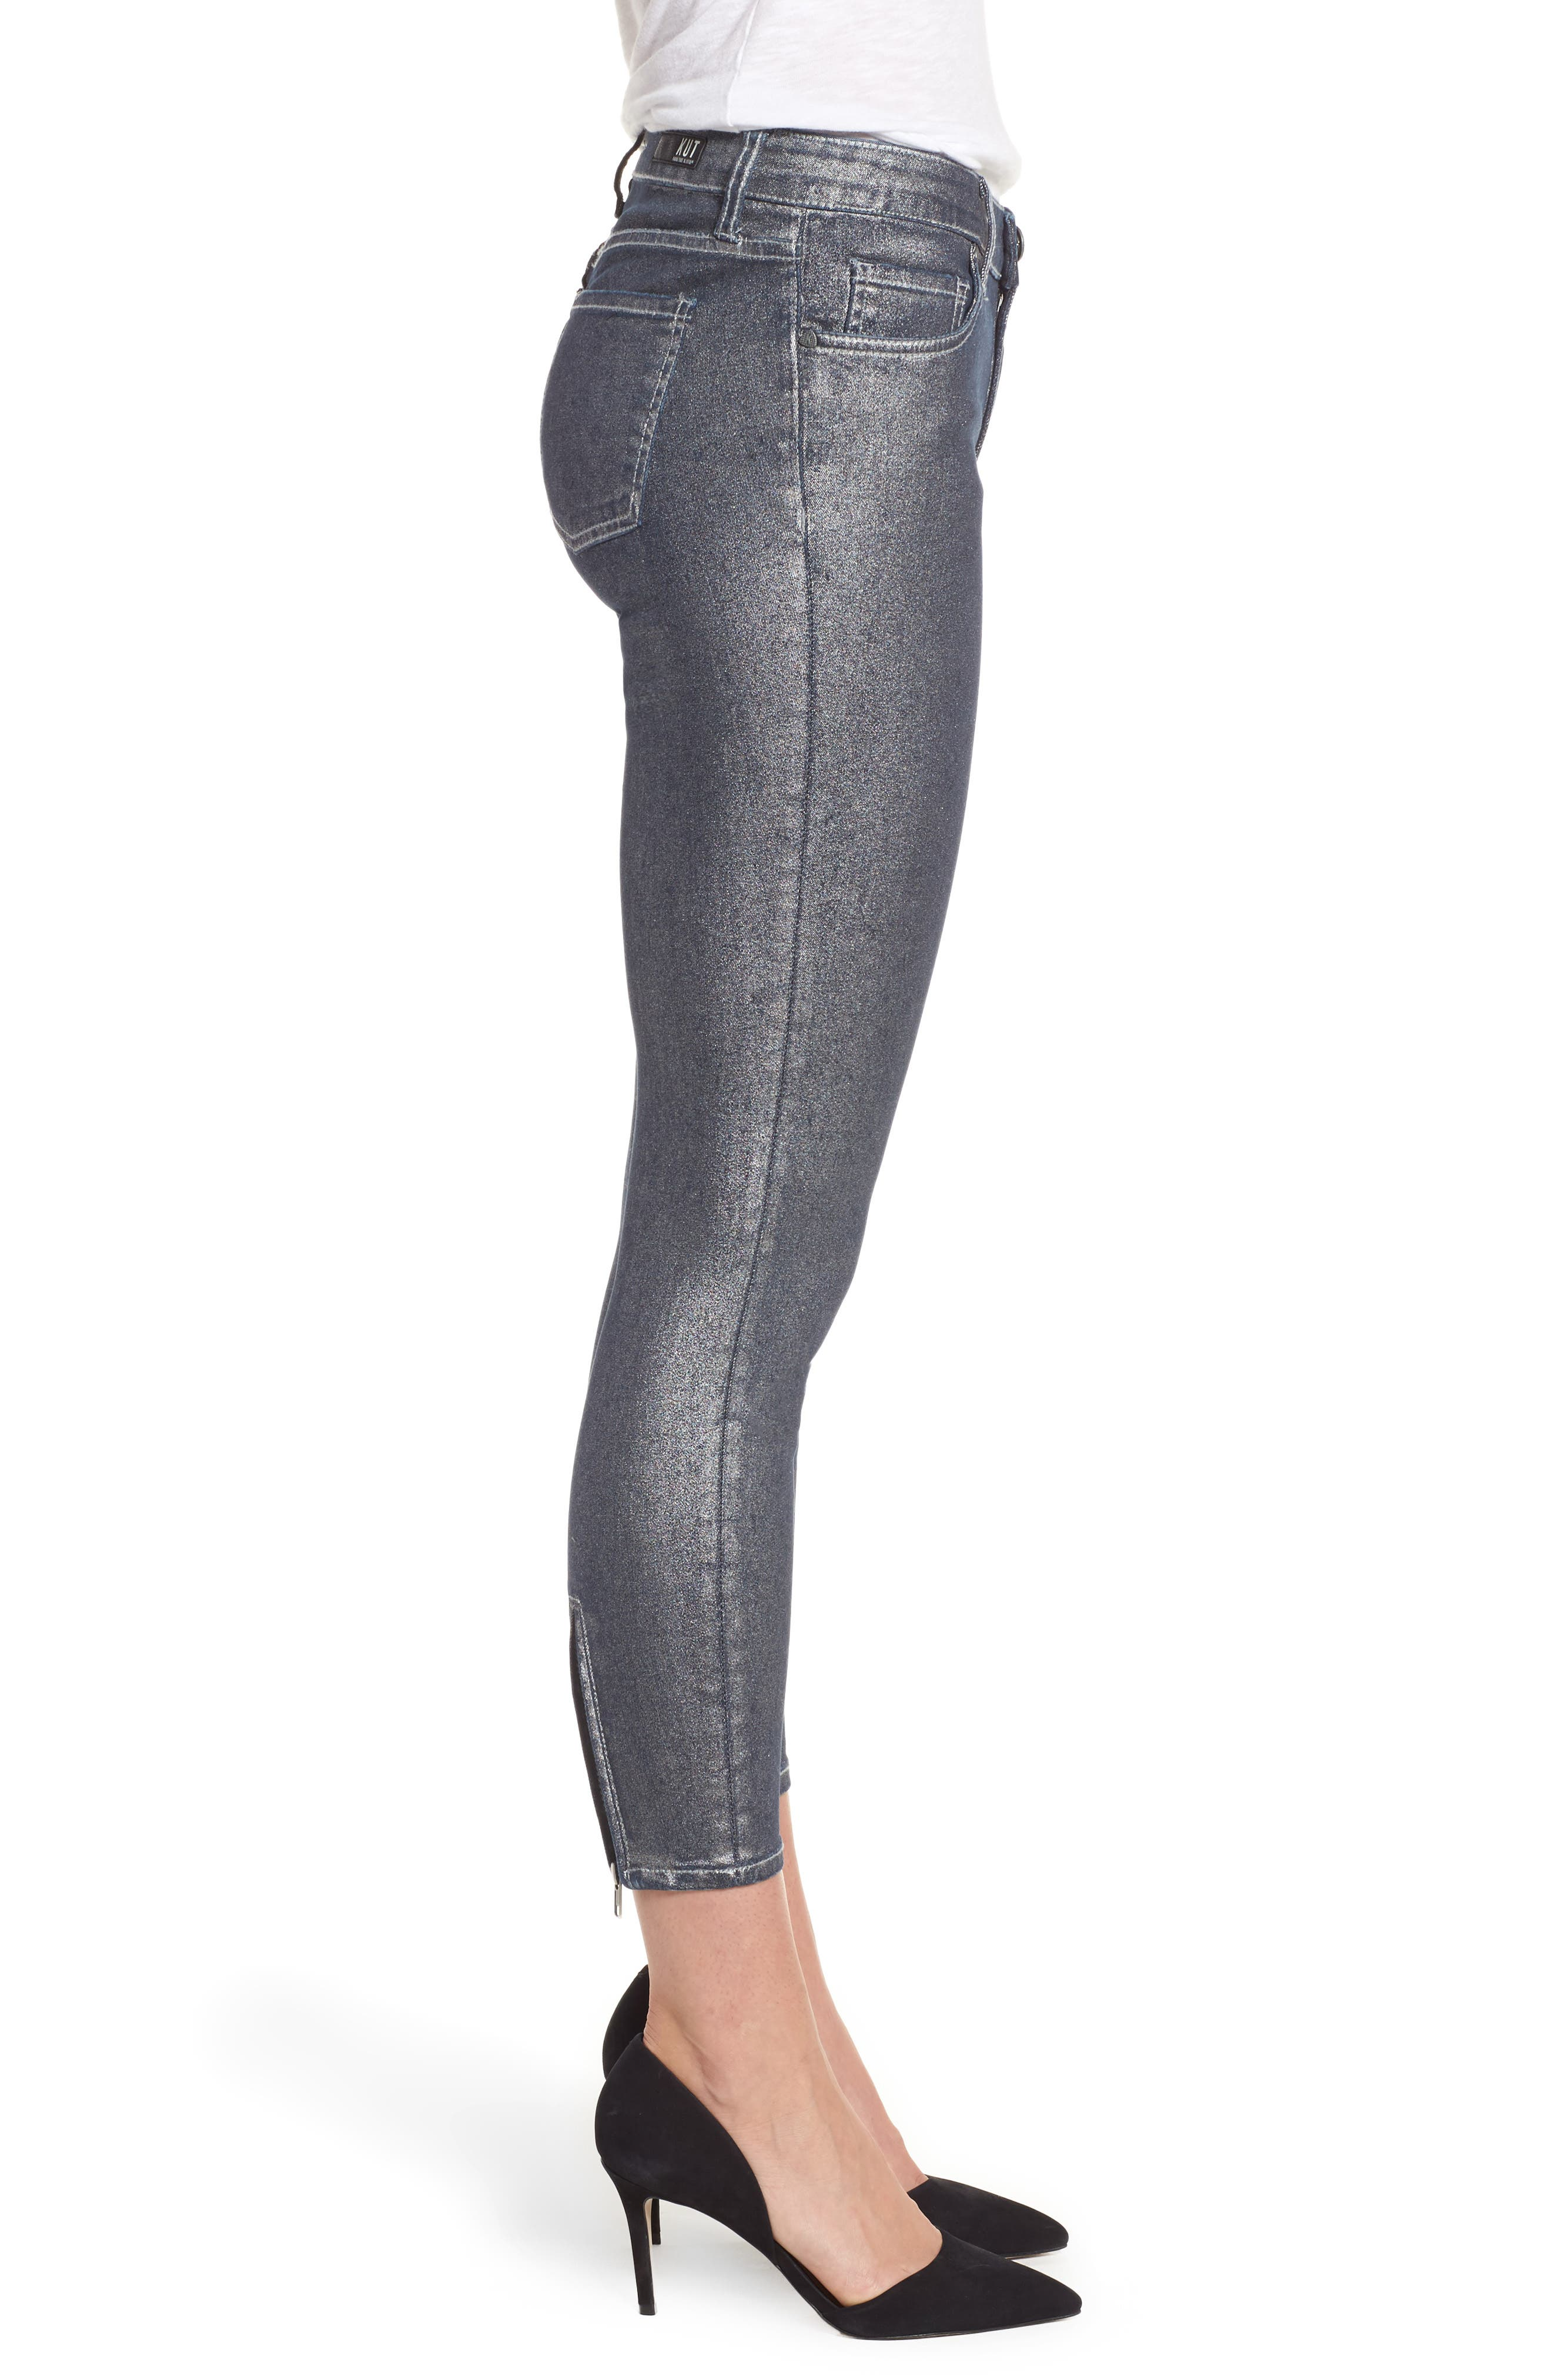 Alternate Image 3  - KUT from the Kloth Connie Ankle Zipper Jeans (Silver) (Regular & Petite)